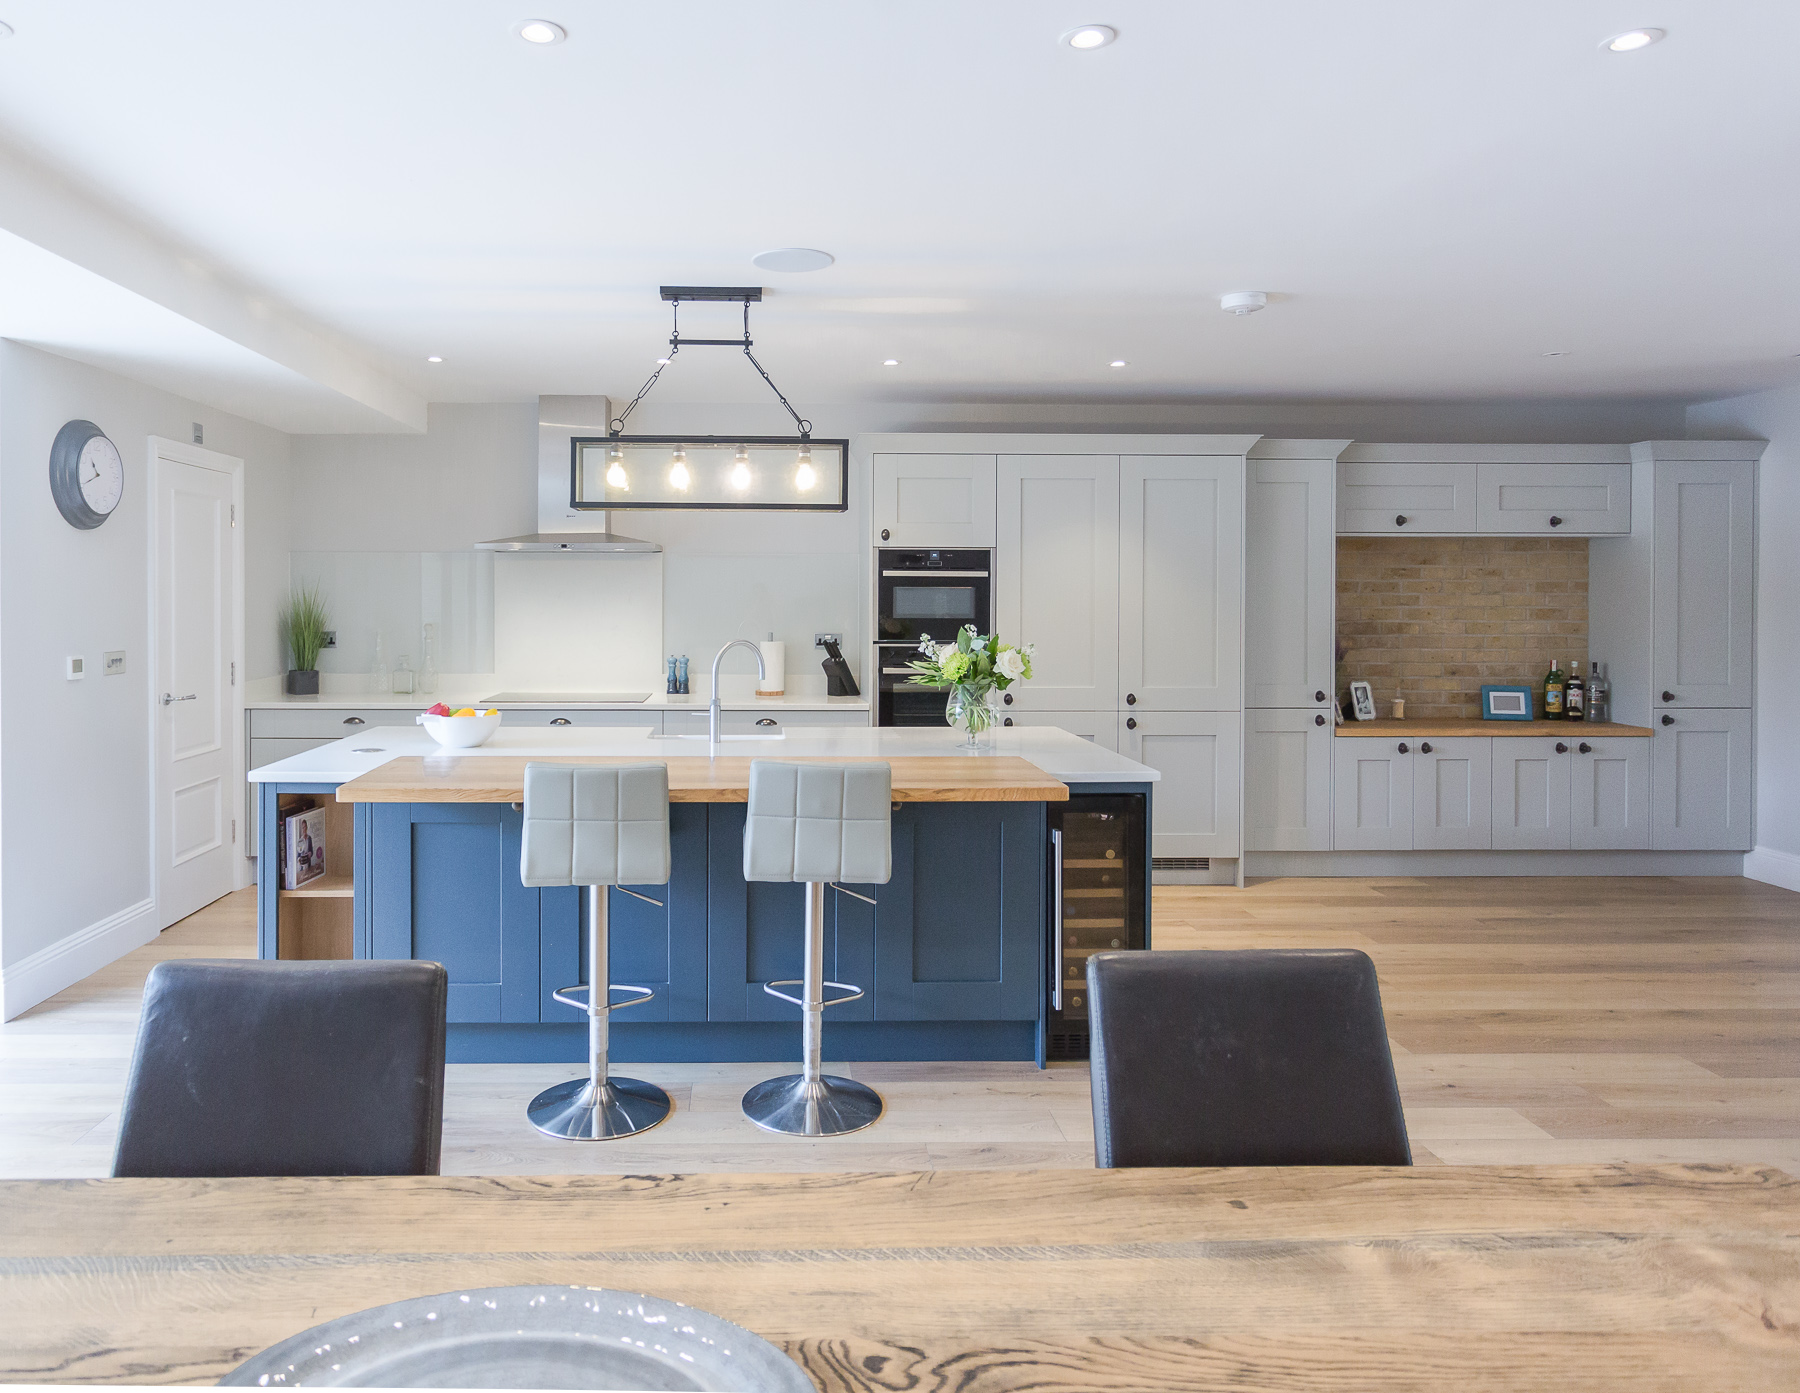 C&C kitchens Hertfordshire - Milbourne Hartforth Blue & Partridge Grey